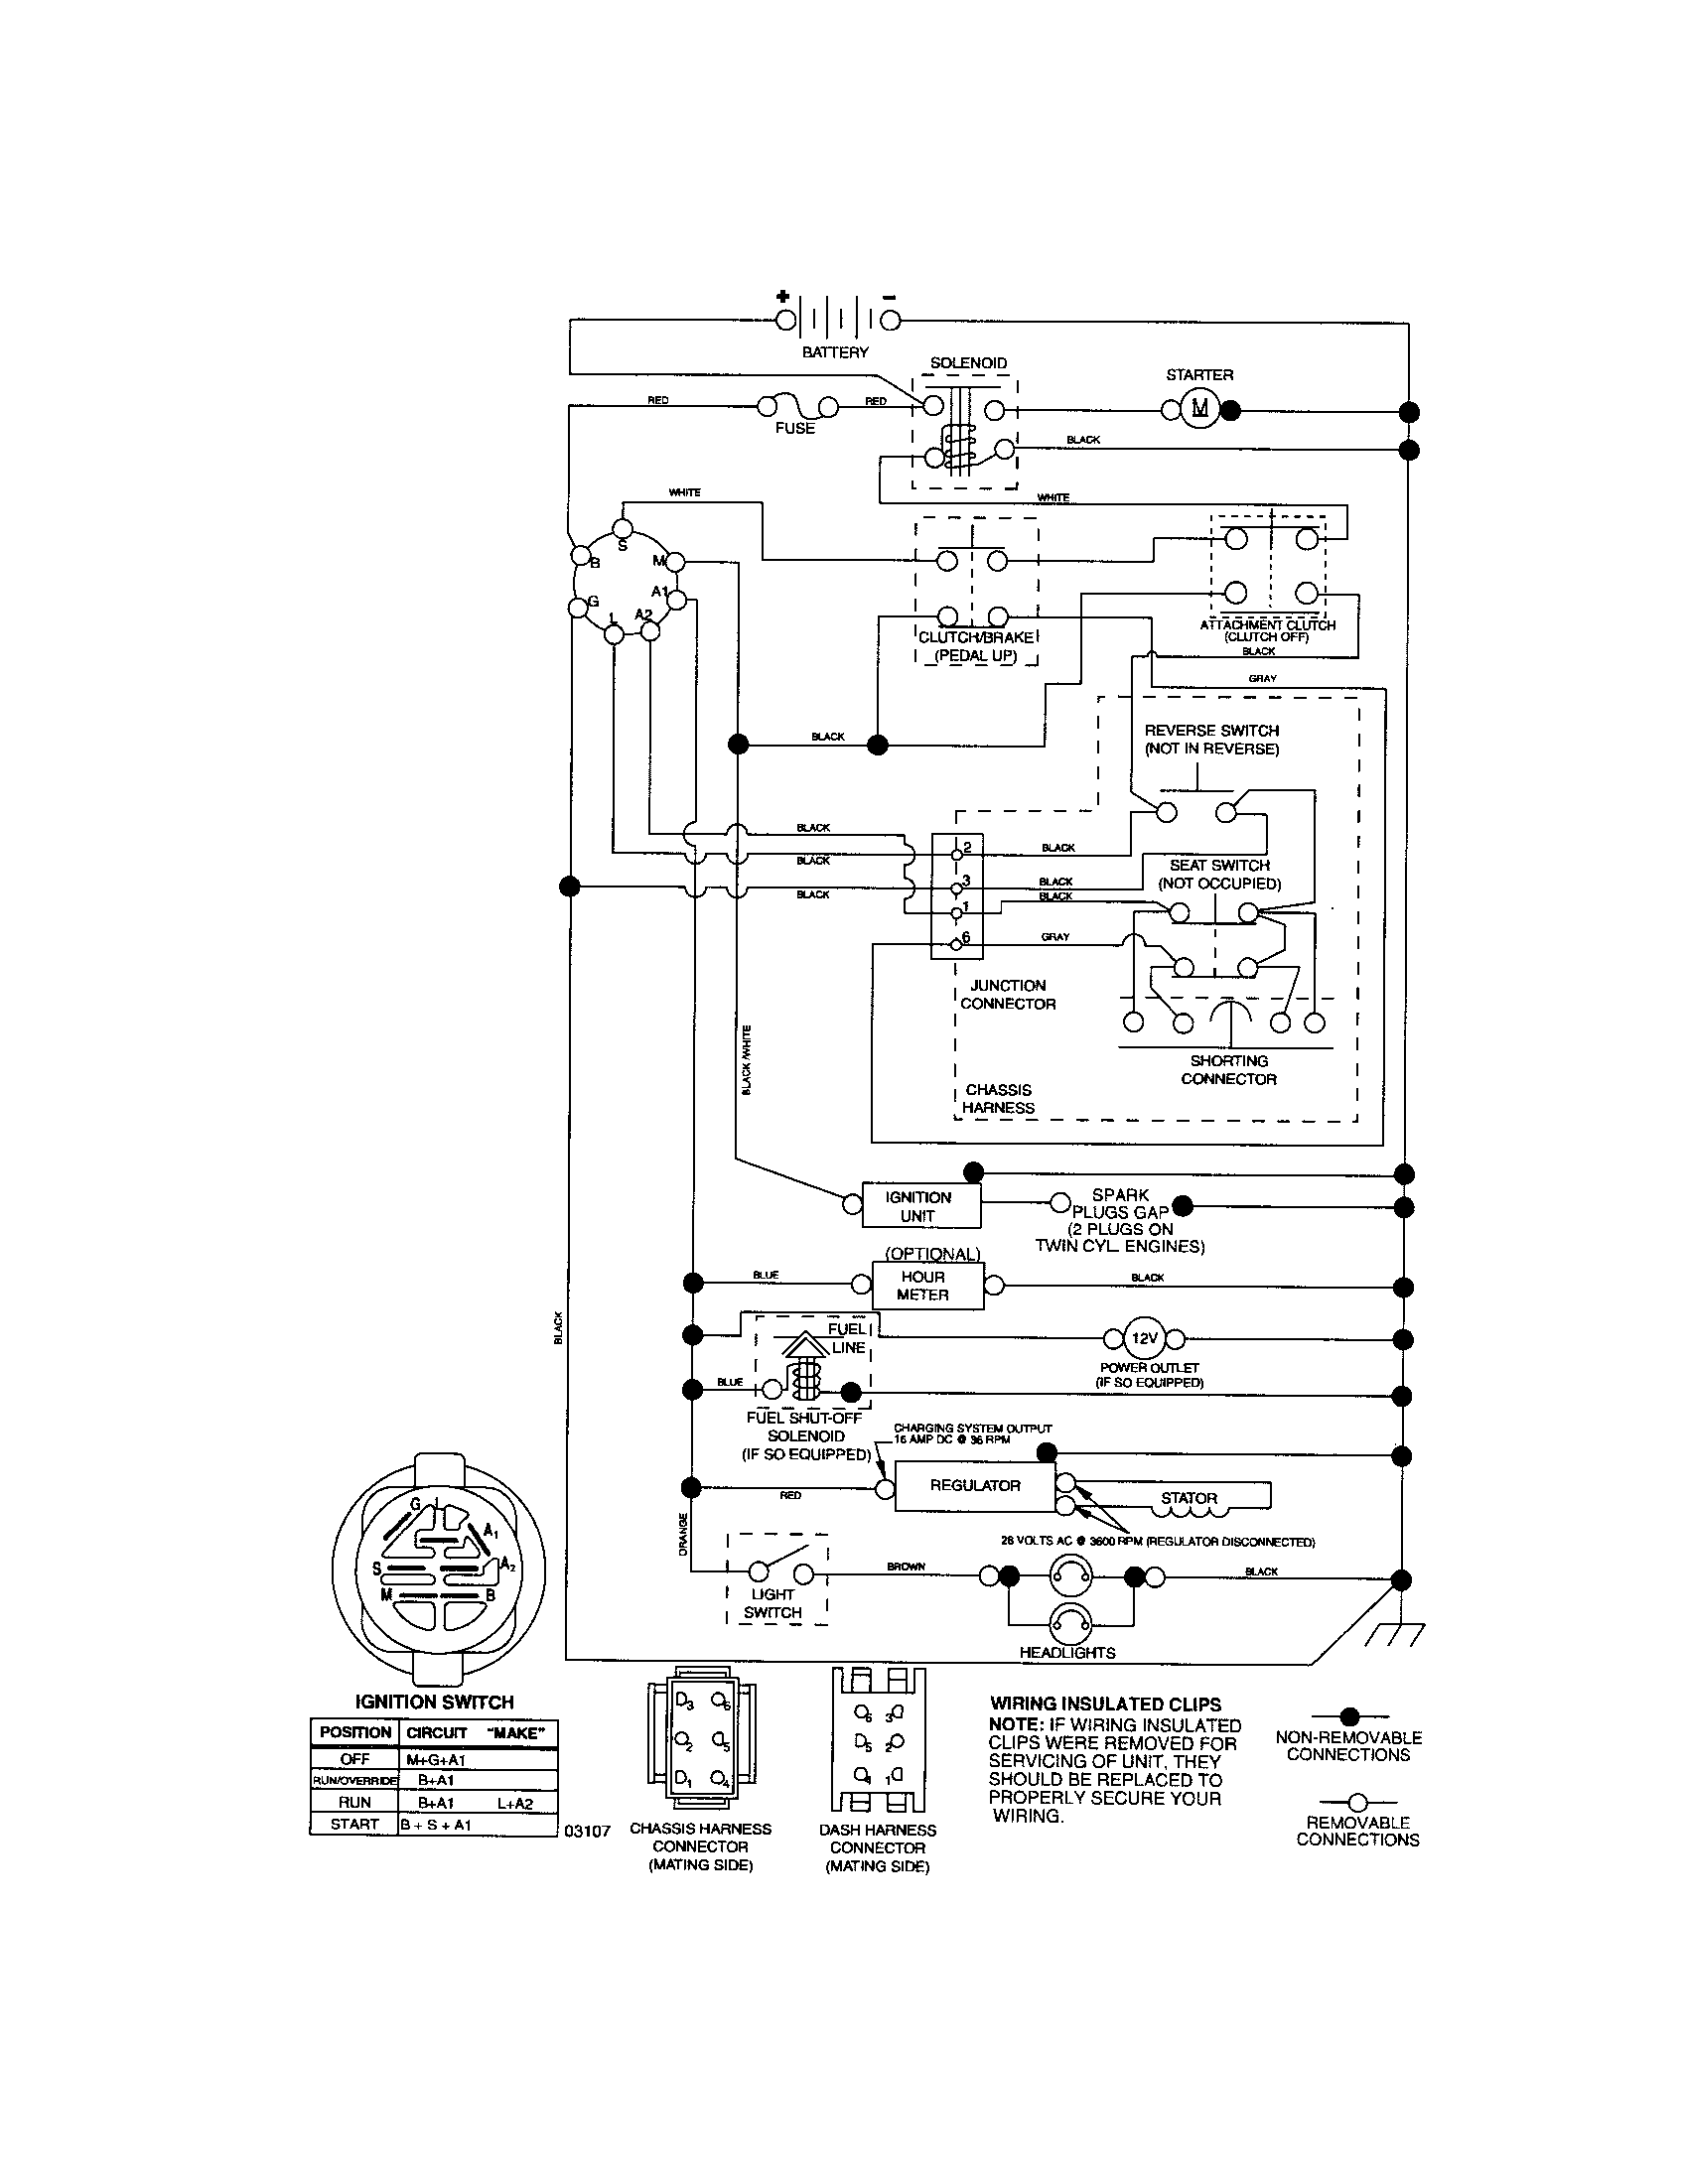 craftsman riding mower electrical diagram wiring diagram craftsman rh pinterest com Craftsman 917 Parts